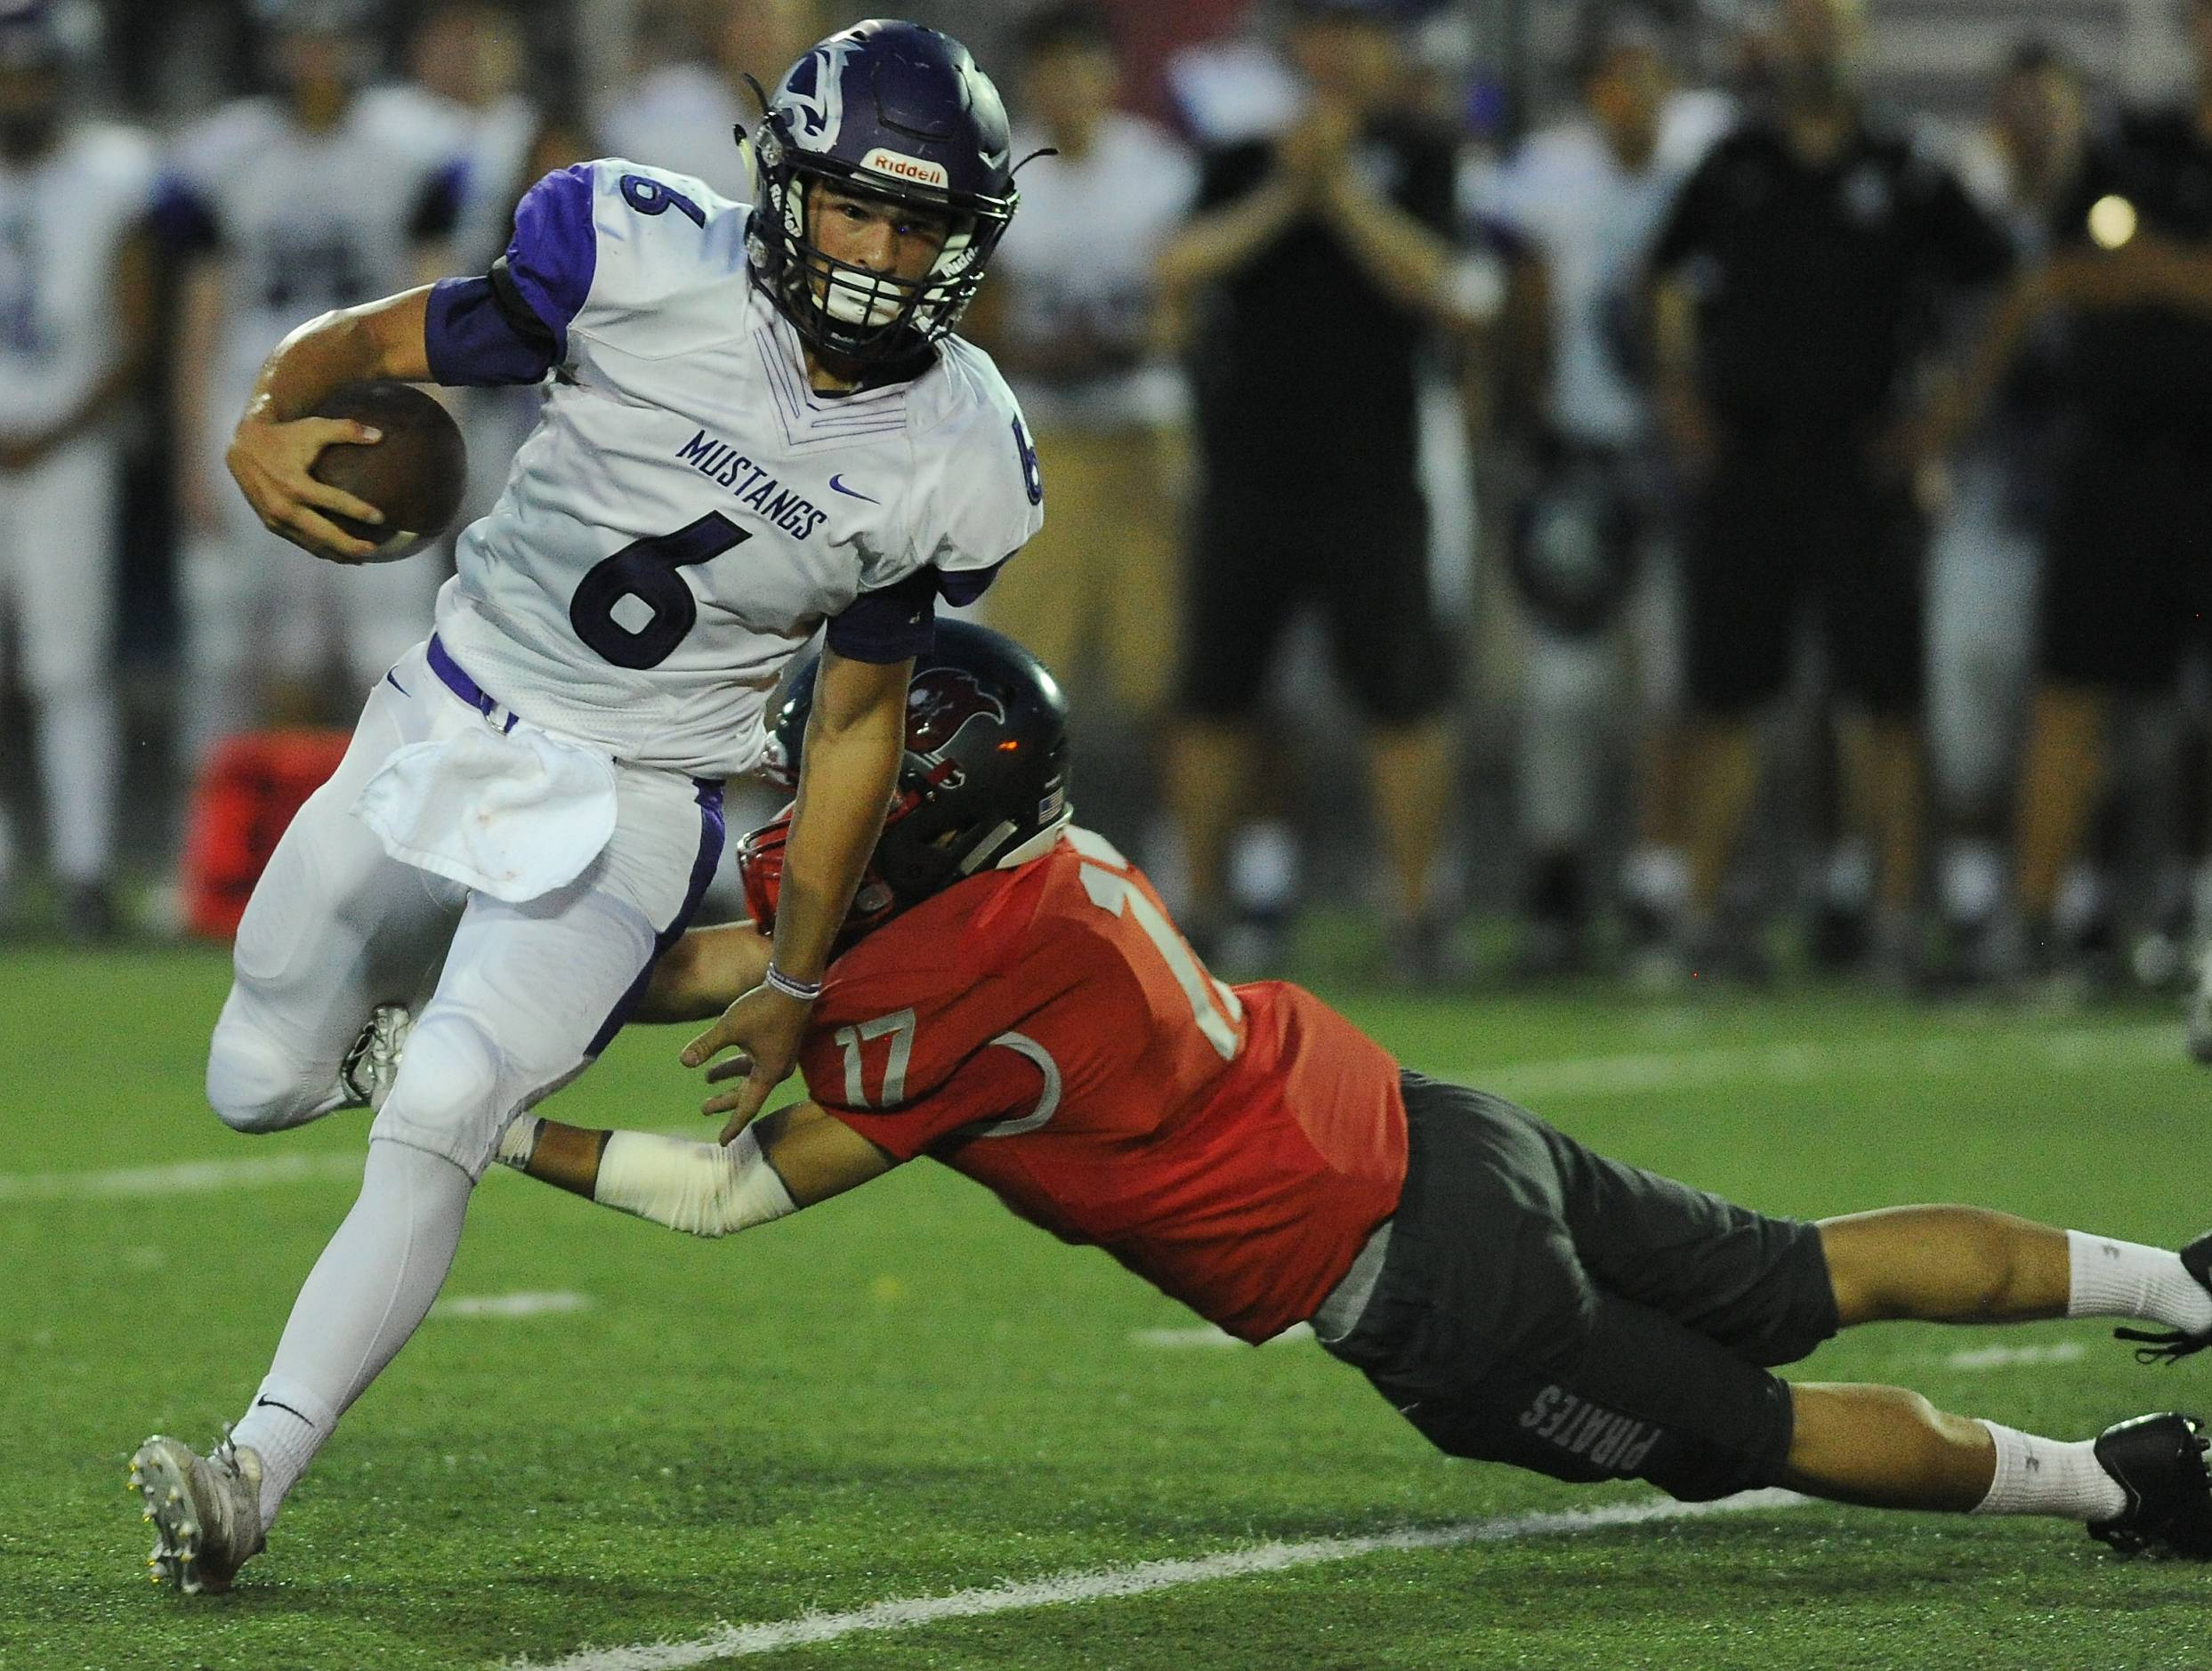 Rolling Meadows' Jordan Wiles runs for a first down on Friday at Palatine.